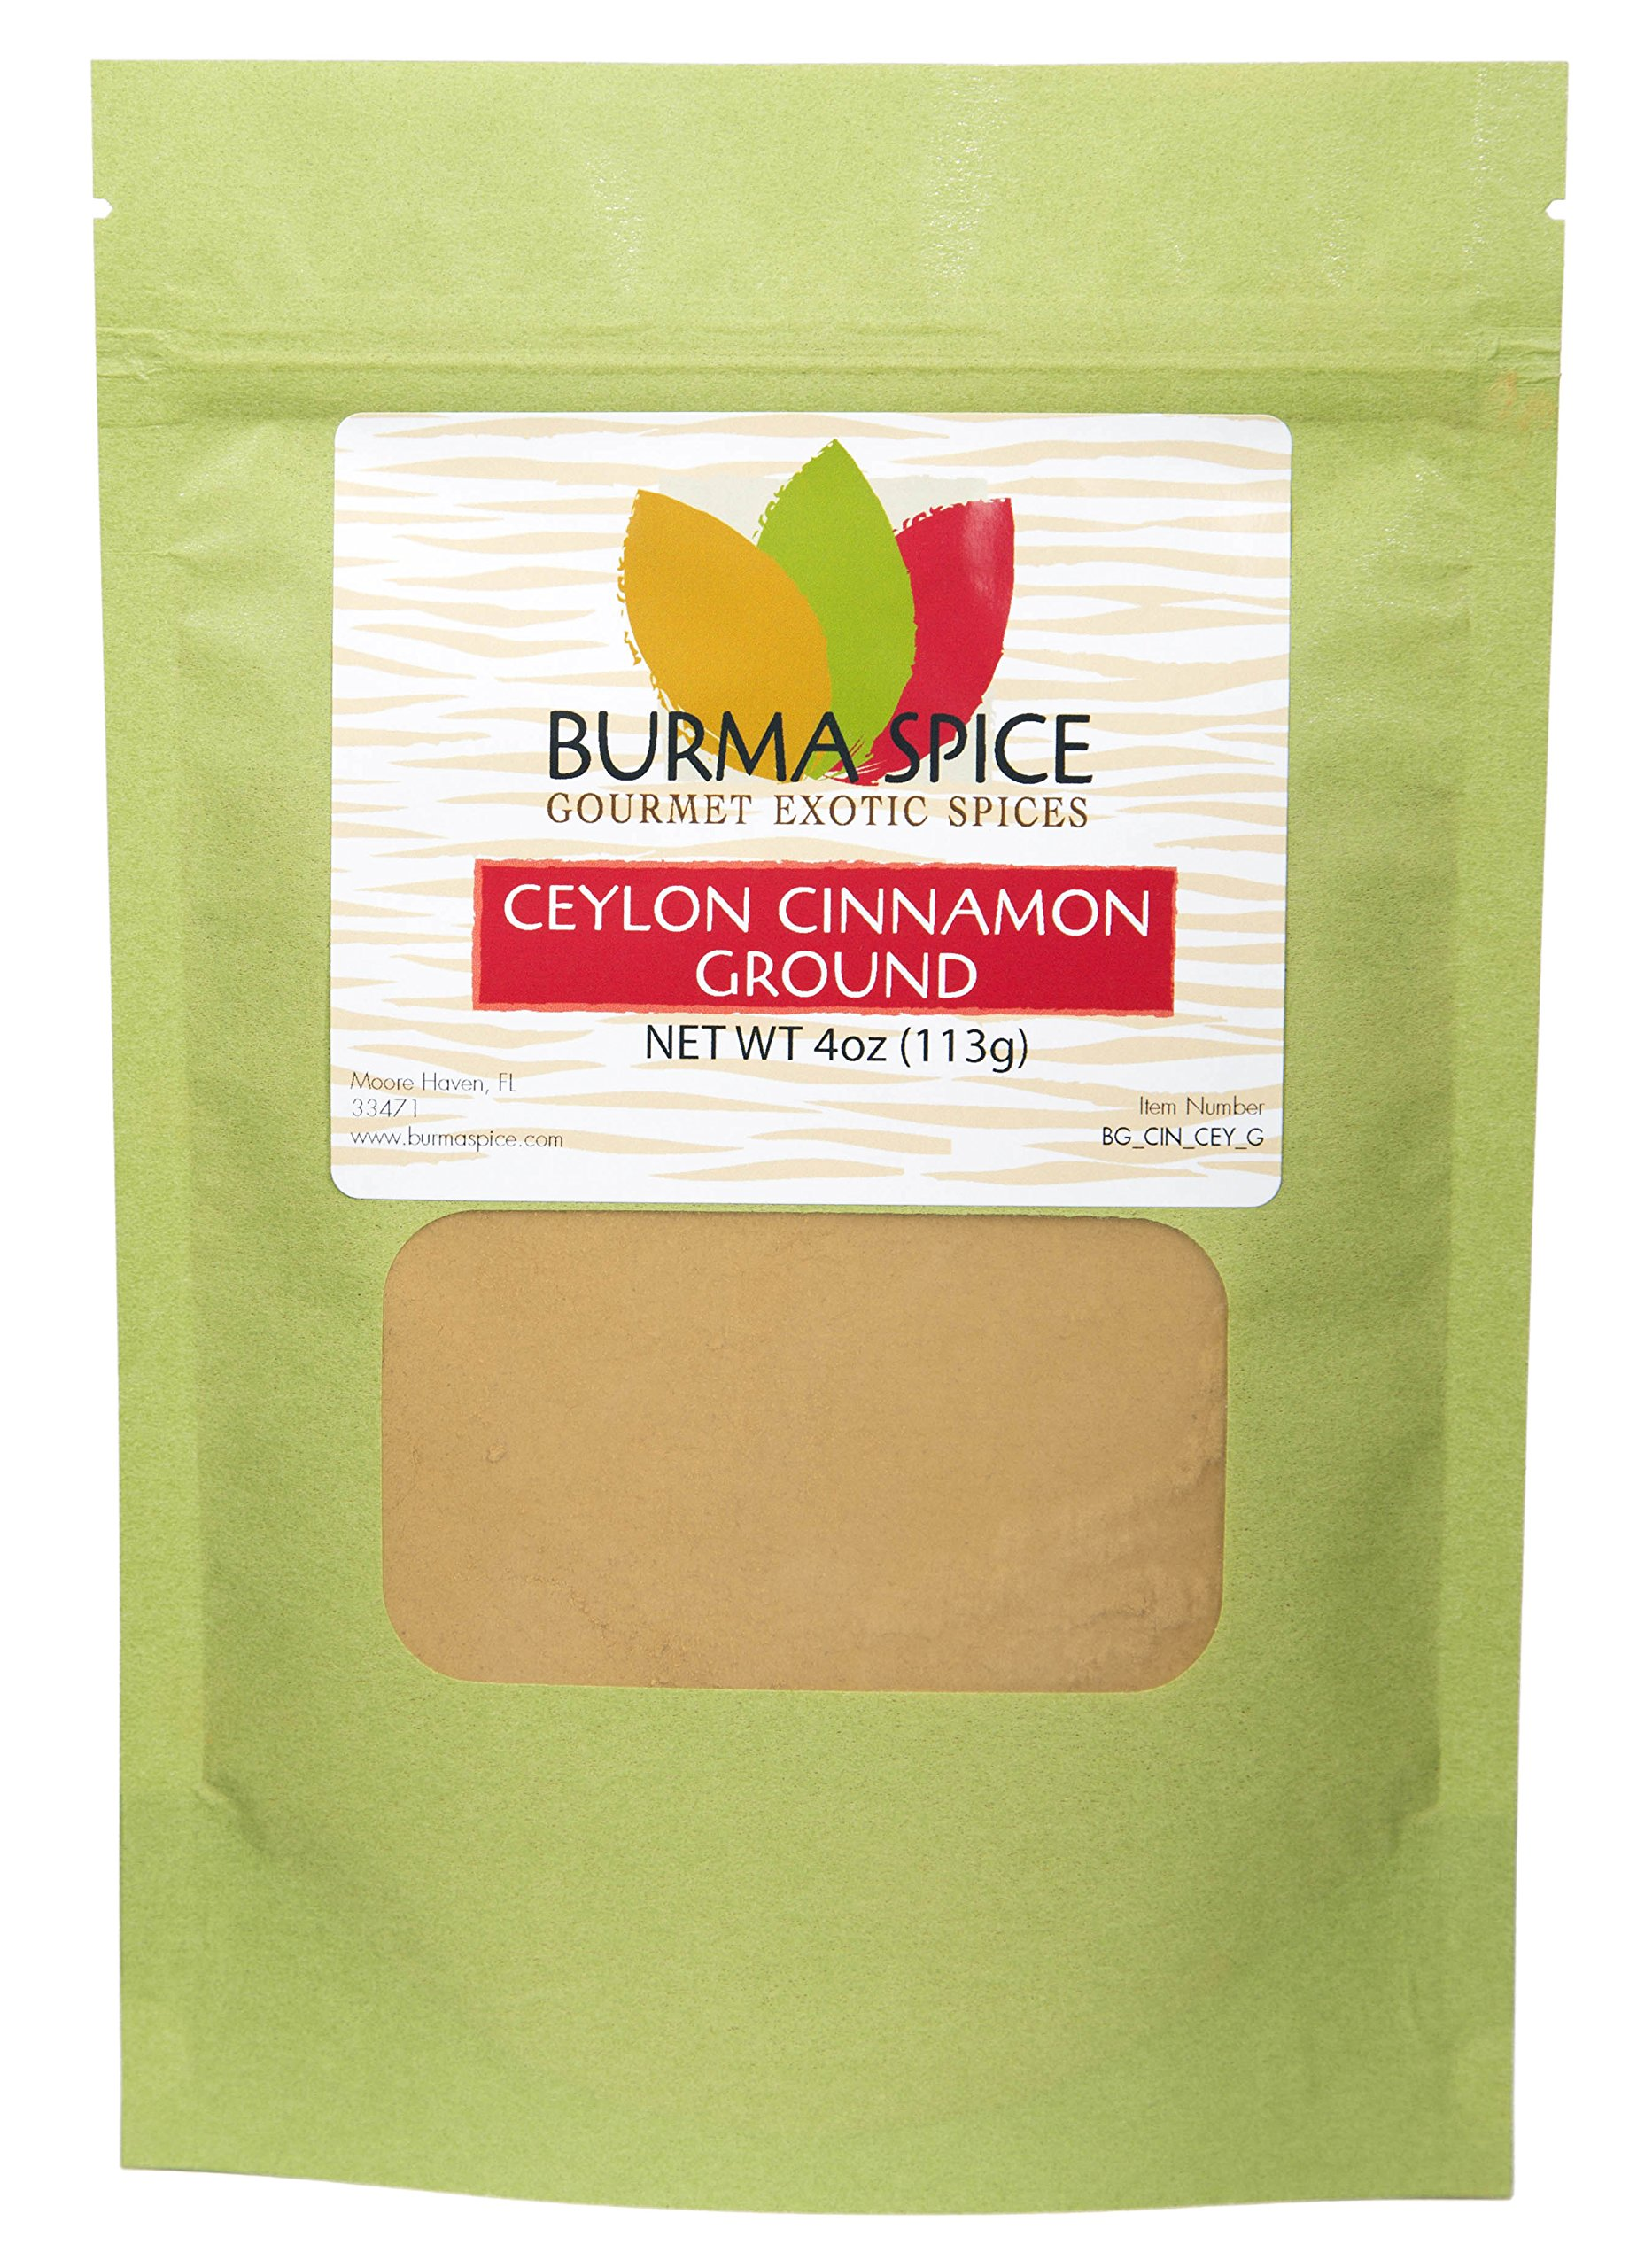 Ground Ceylon Cinnamon | Very freshly ground | Highest Premium Grade | 100% Pure with no additives | Kosher Certified (4oz) by Burma Spice (Image #1)